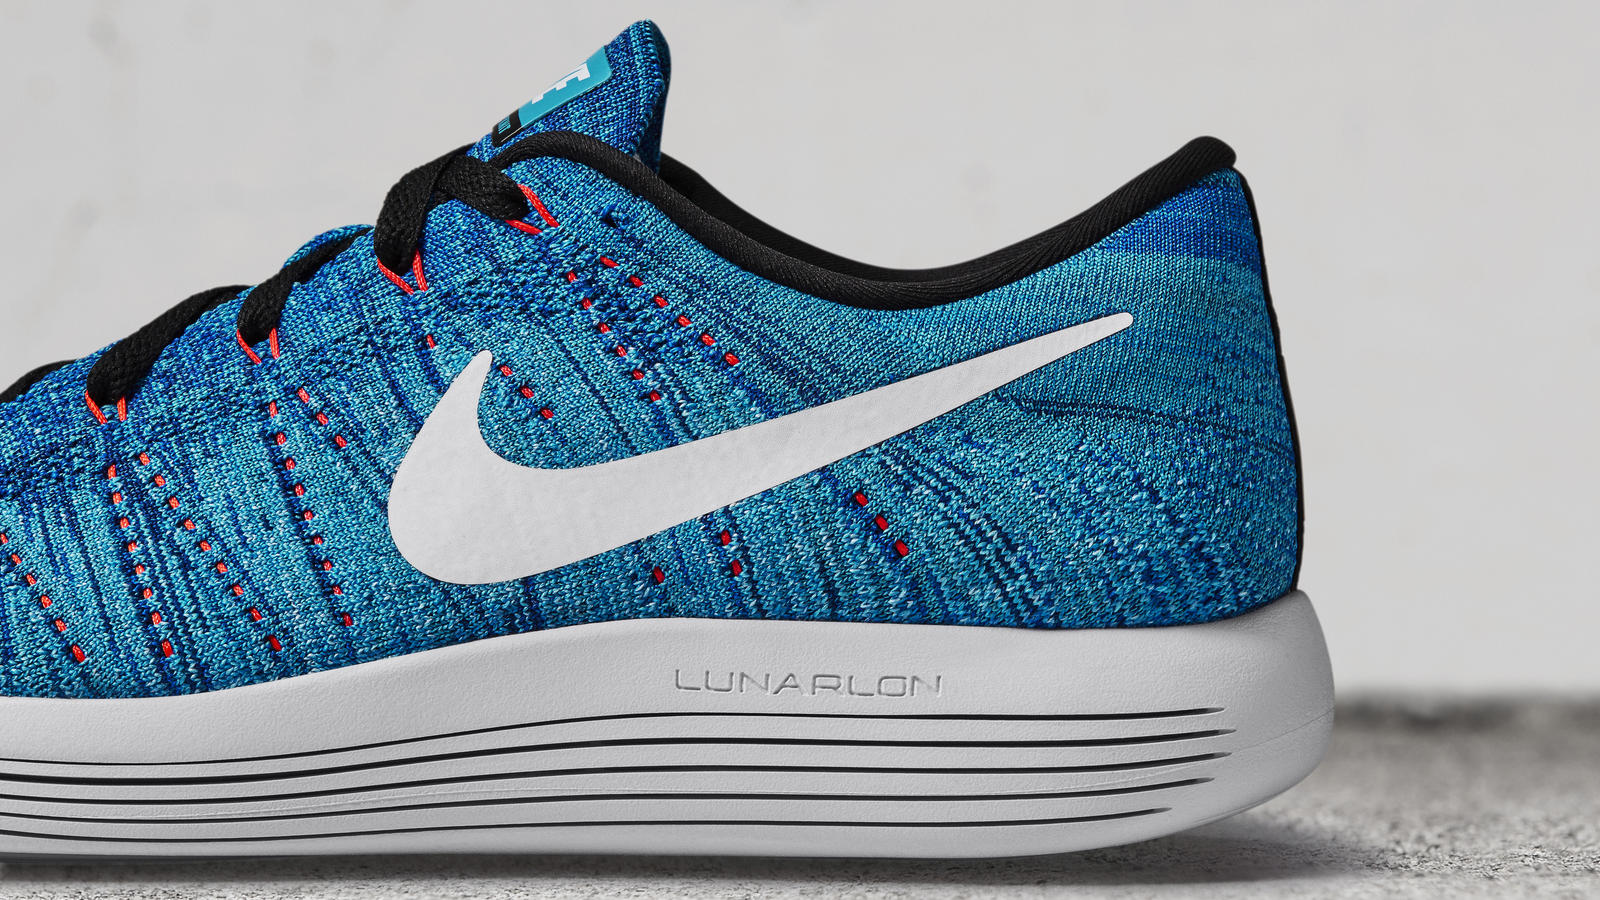 save off 0f2b4 38f39 Nike LunarEpic Low Flyknit